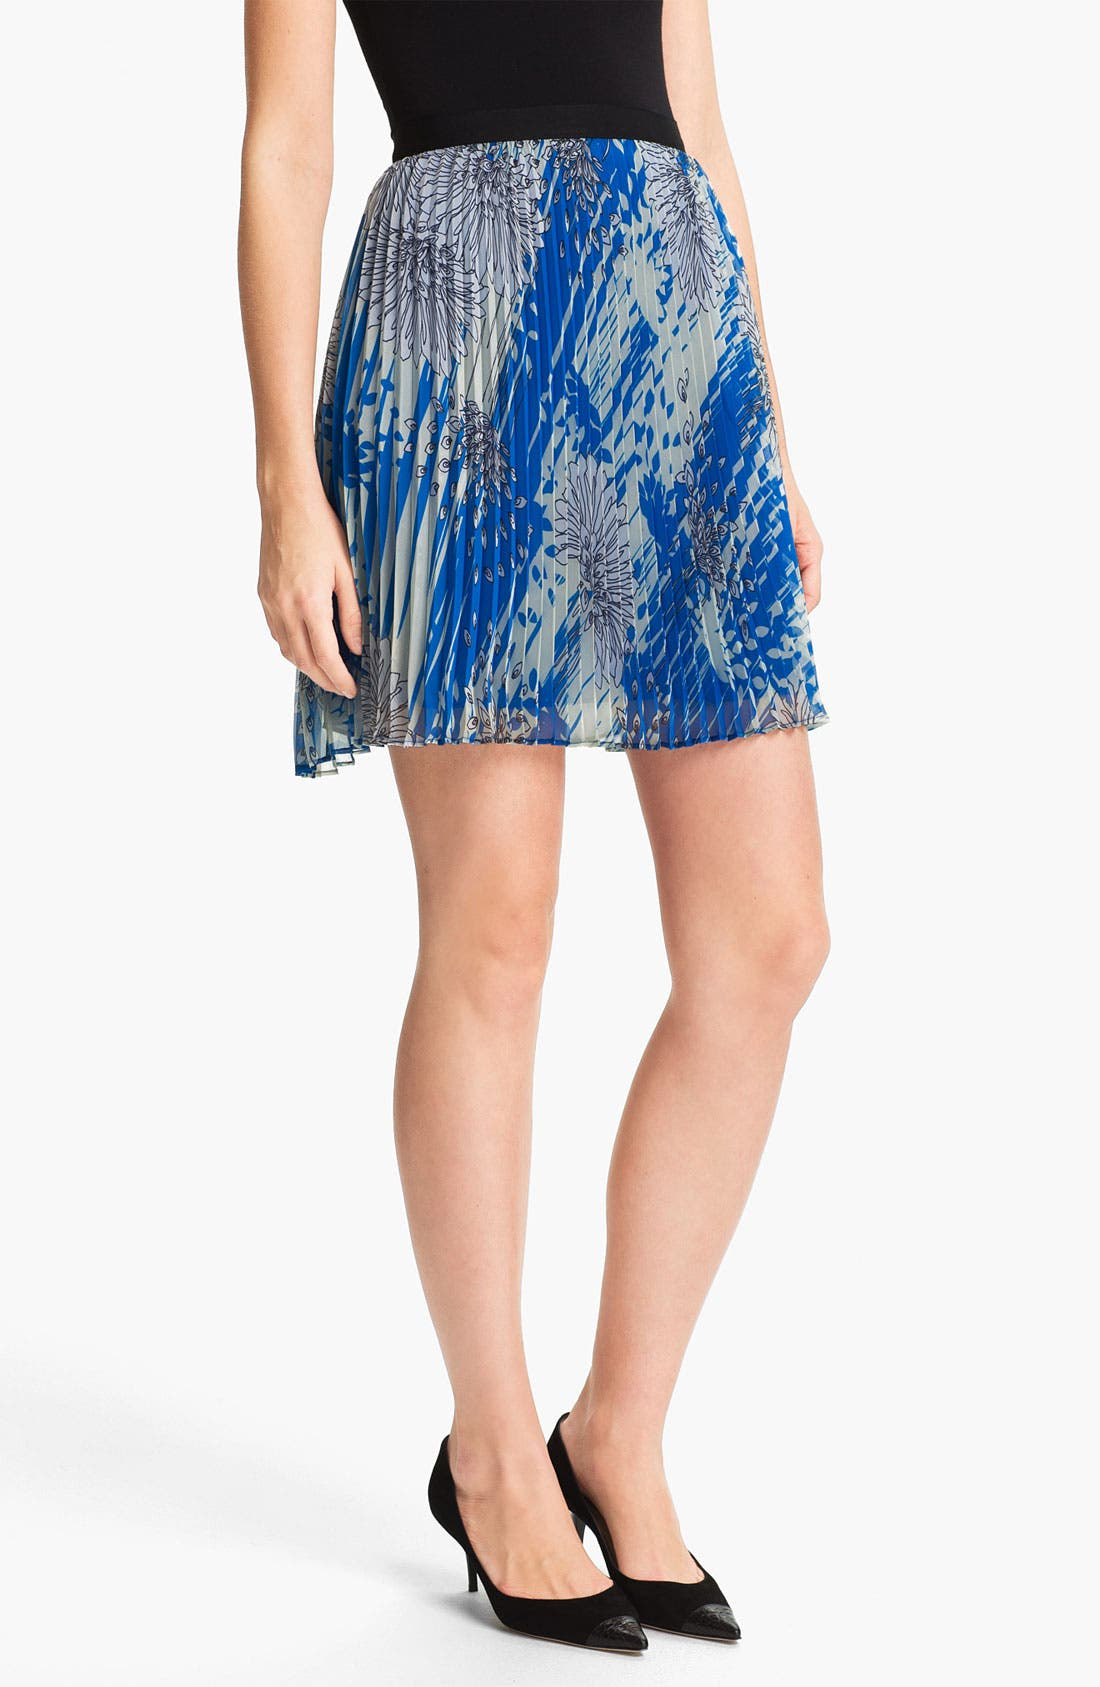 Alternate Image 1 Selected - Miss Wu Print Chiffon Skirt (Nordstrom Exclusive)